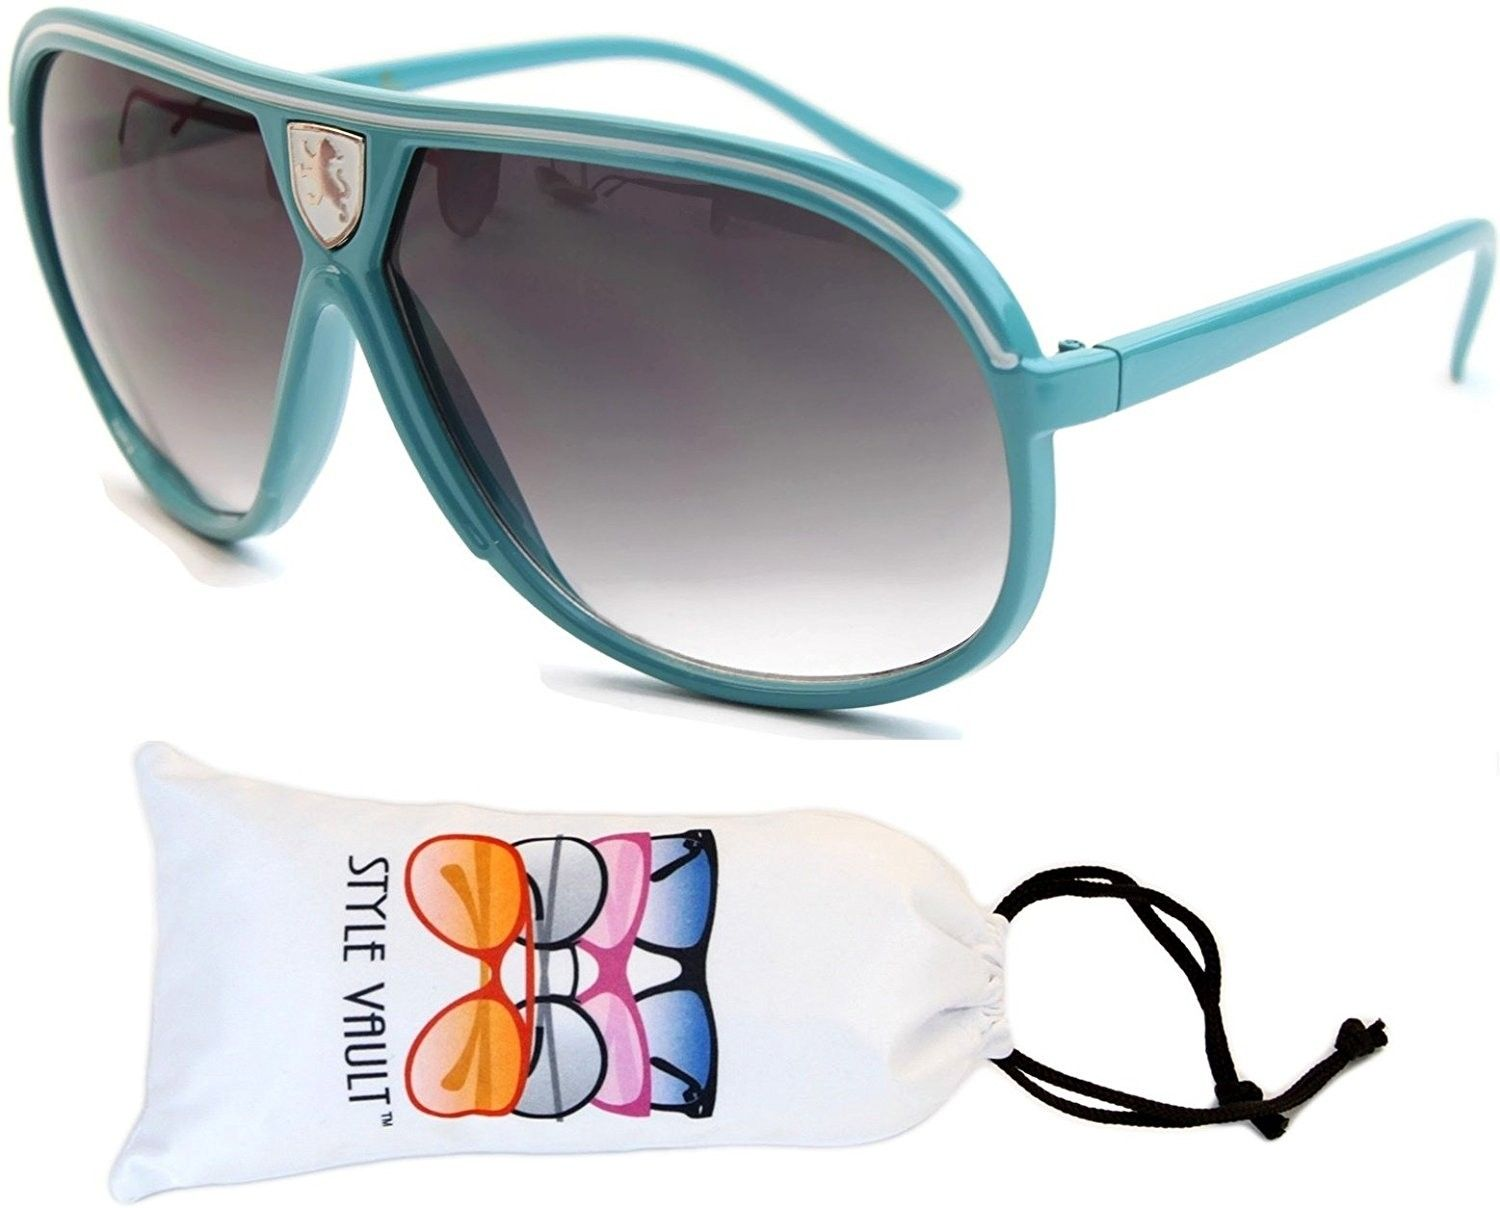 87cf29db5f A07-vp Aviator Retro Millionaire Sunglasses - P2725c Blue White -  CZ12FYQR2KH - Women s Sunglasses